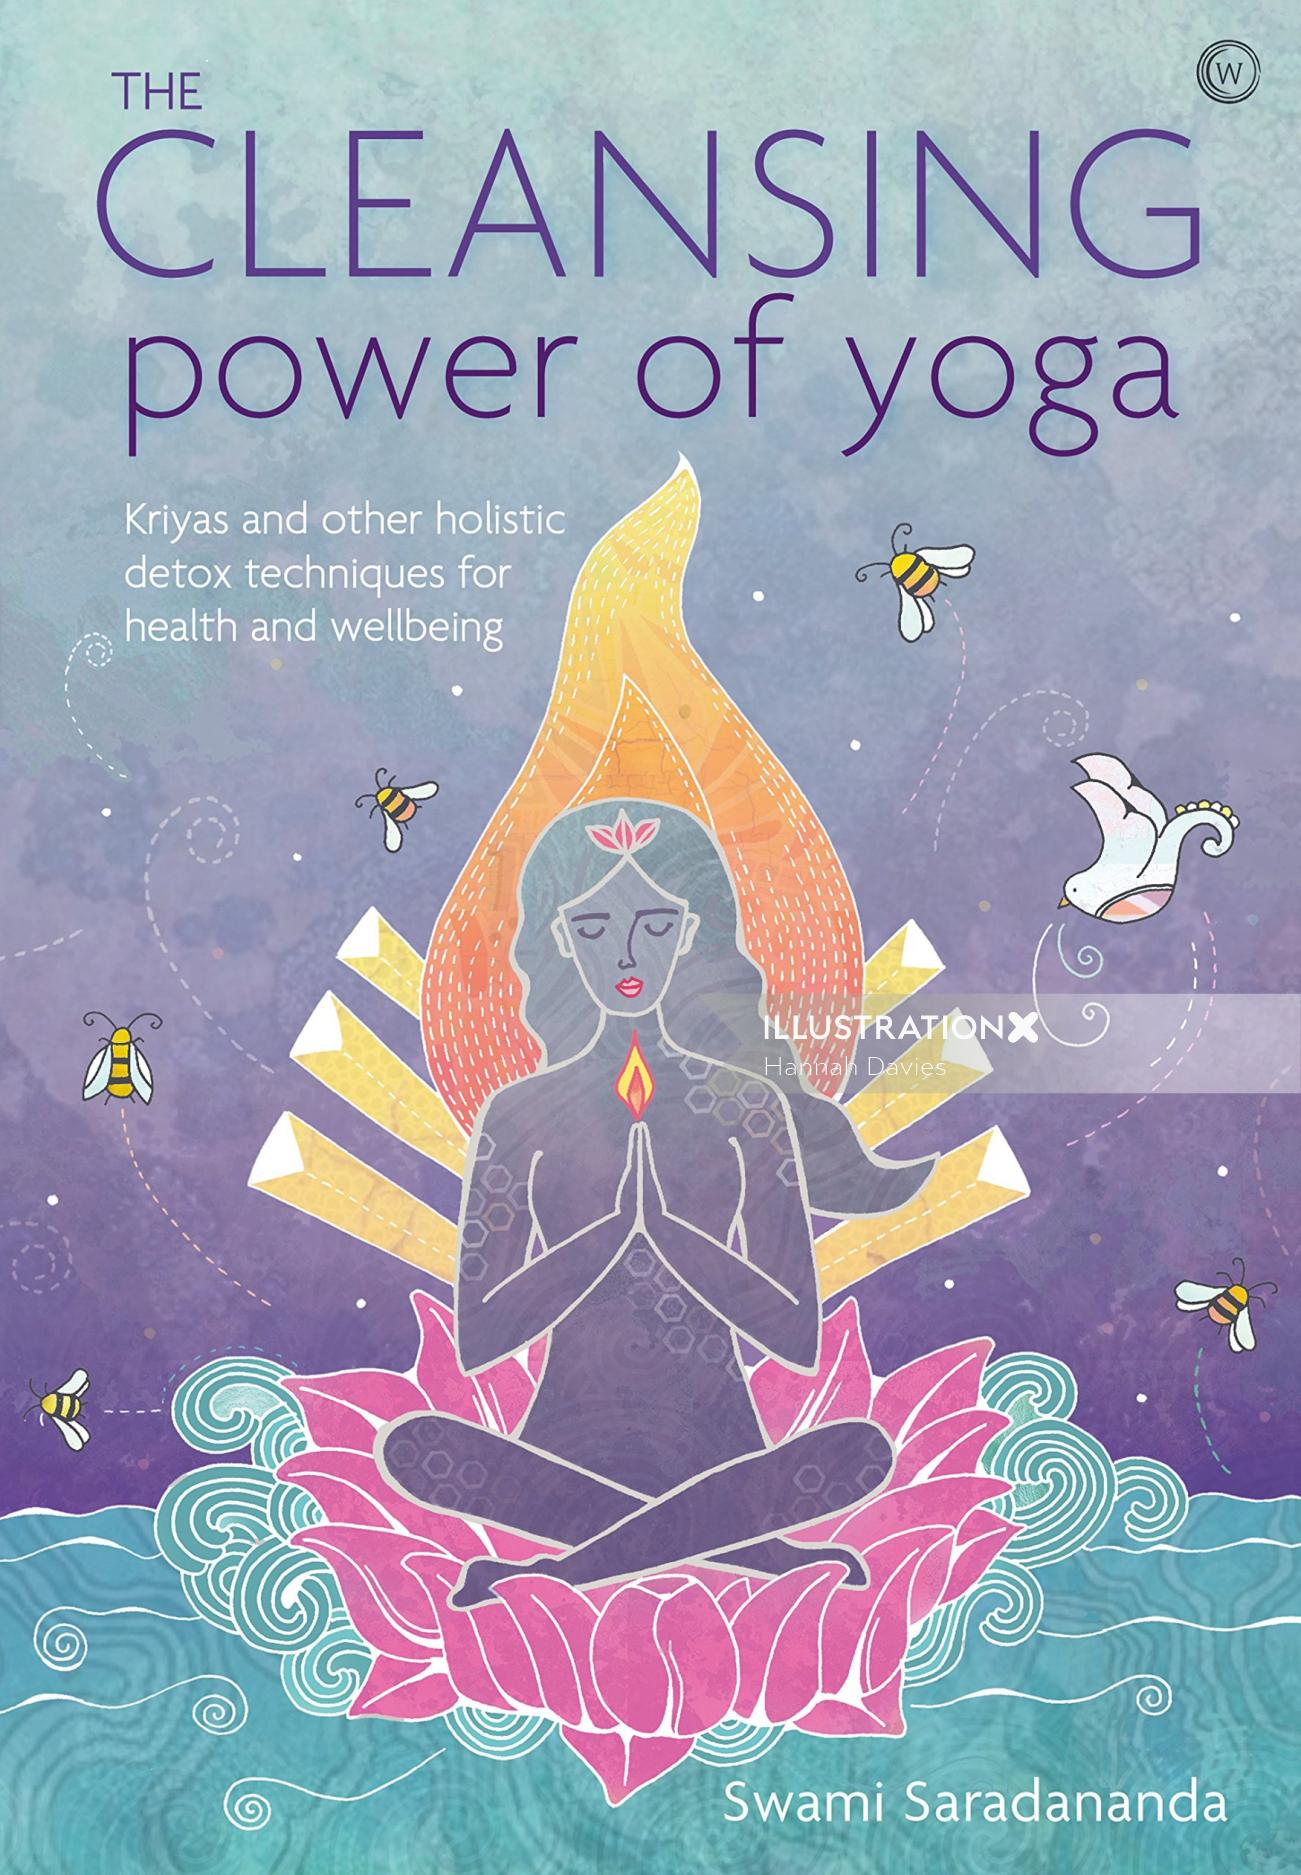 Graphic The cleansing power of yoga